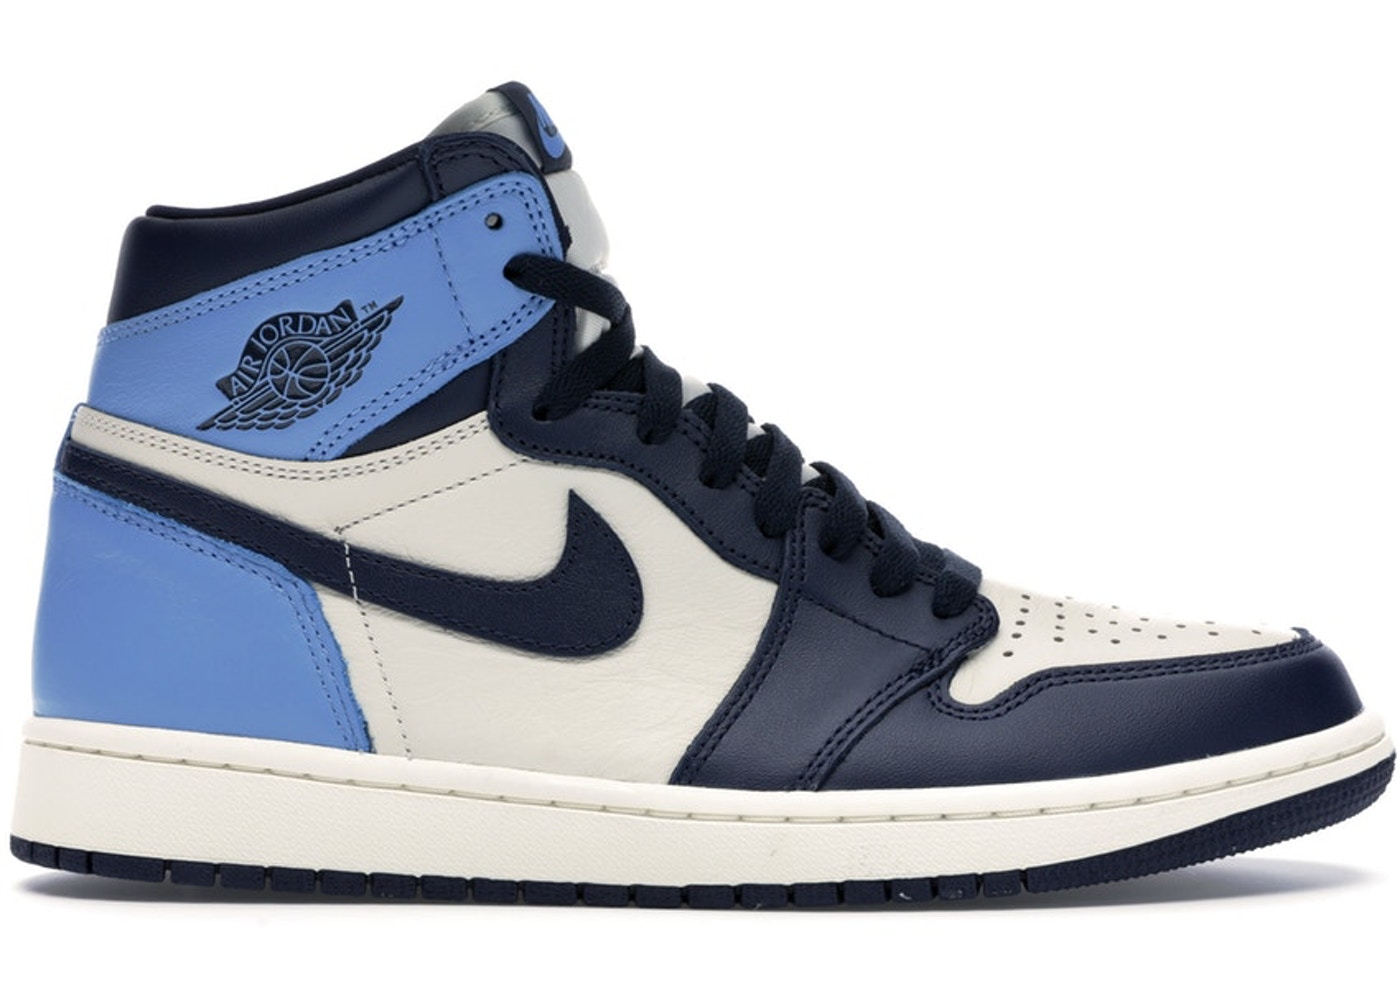 save off 4571d f294d Jordan 1 Retro High Obsidian UNC